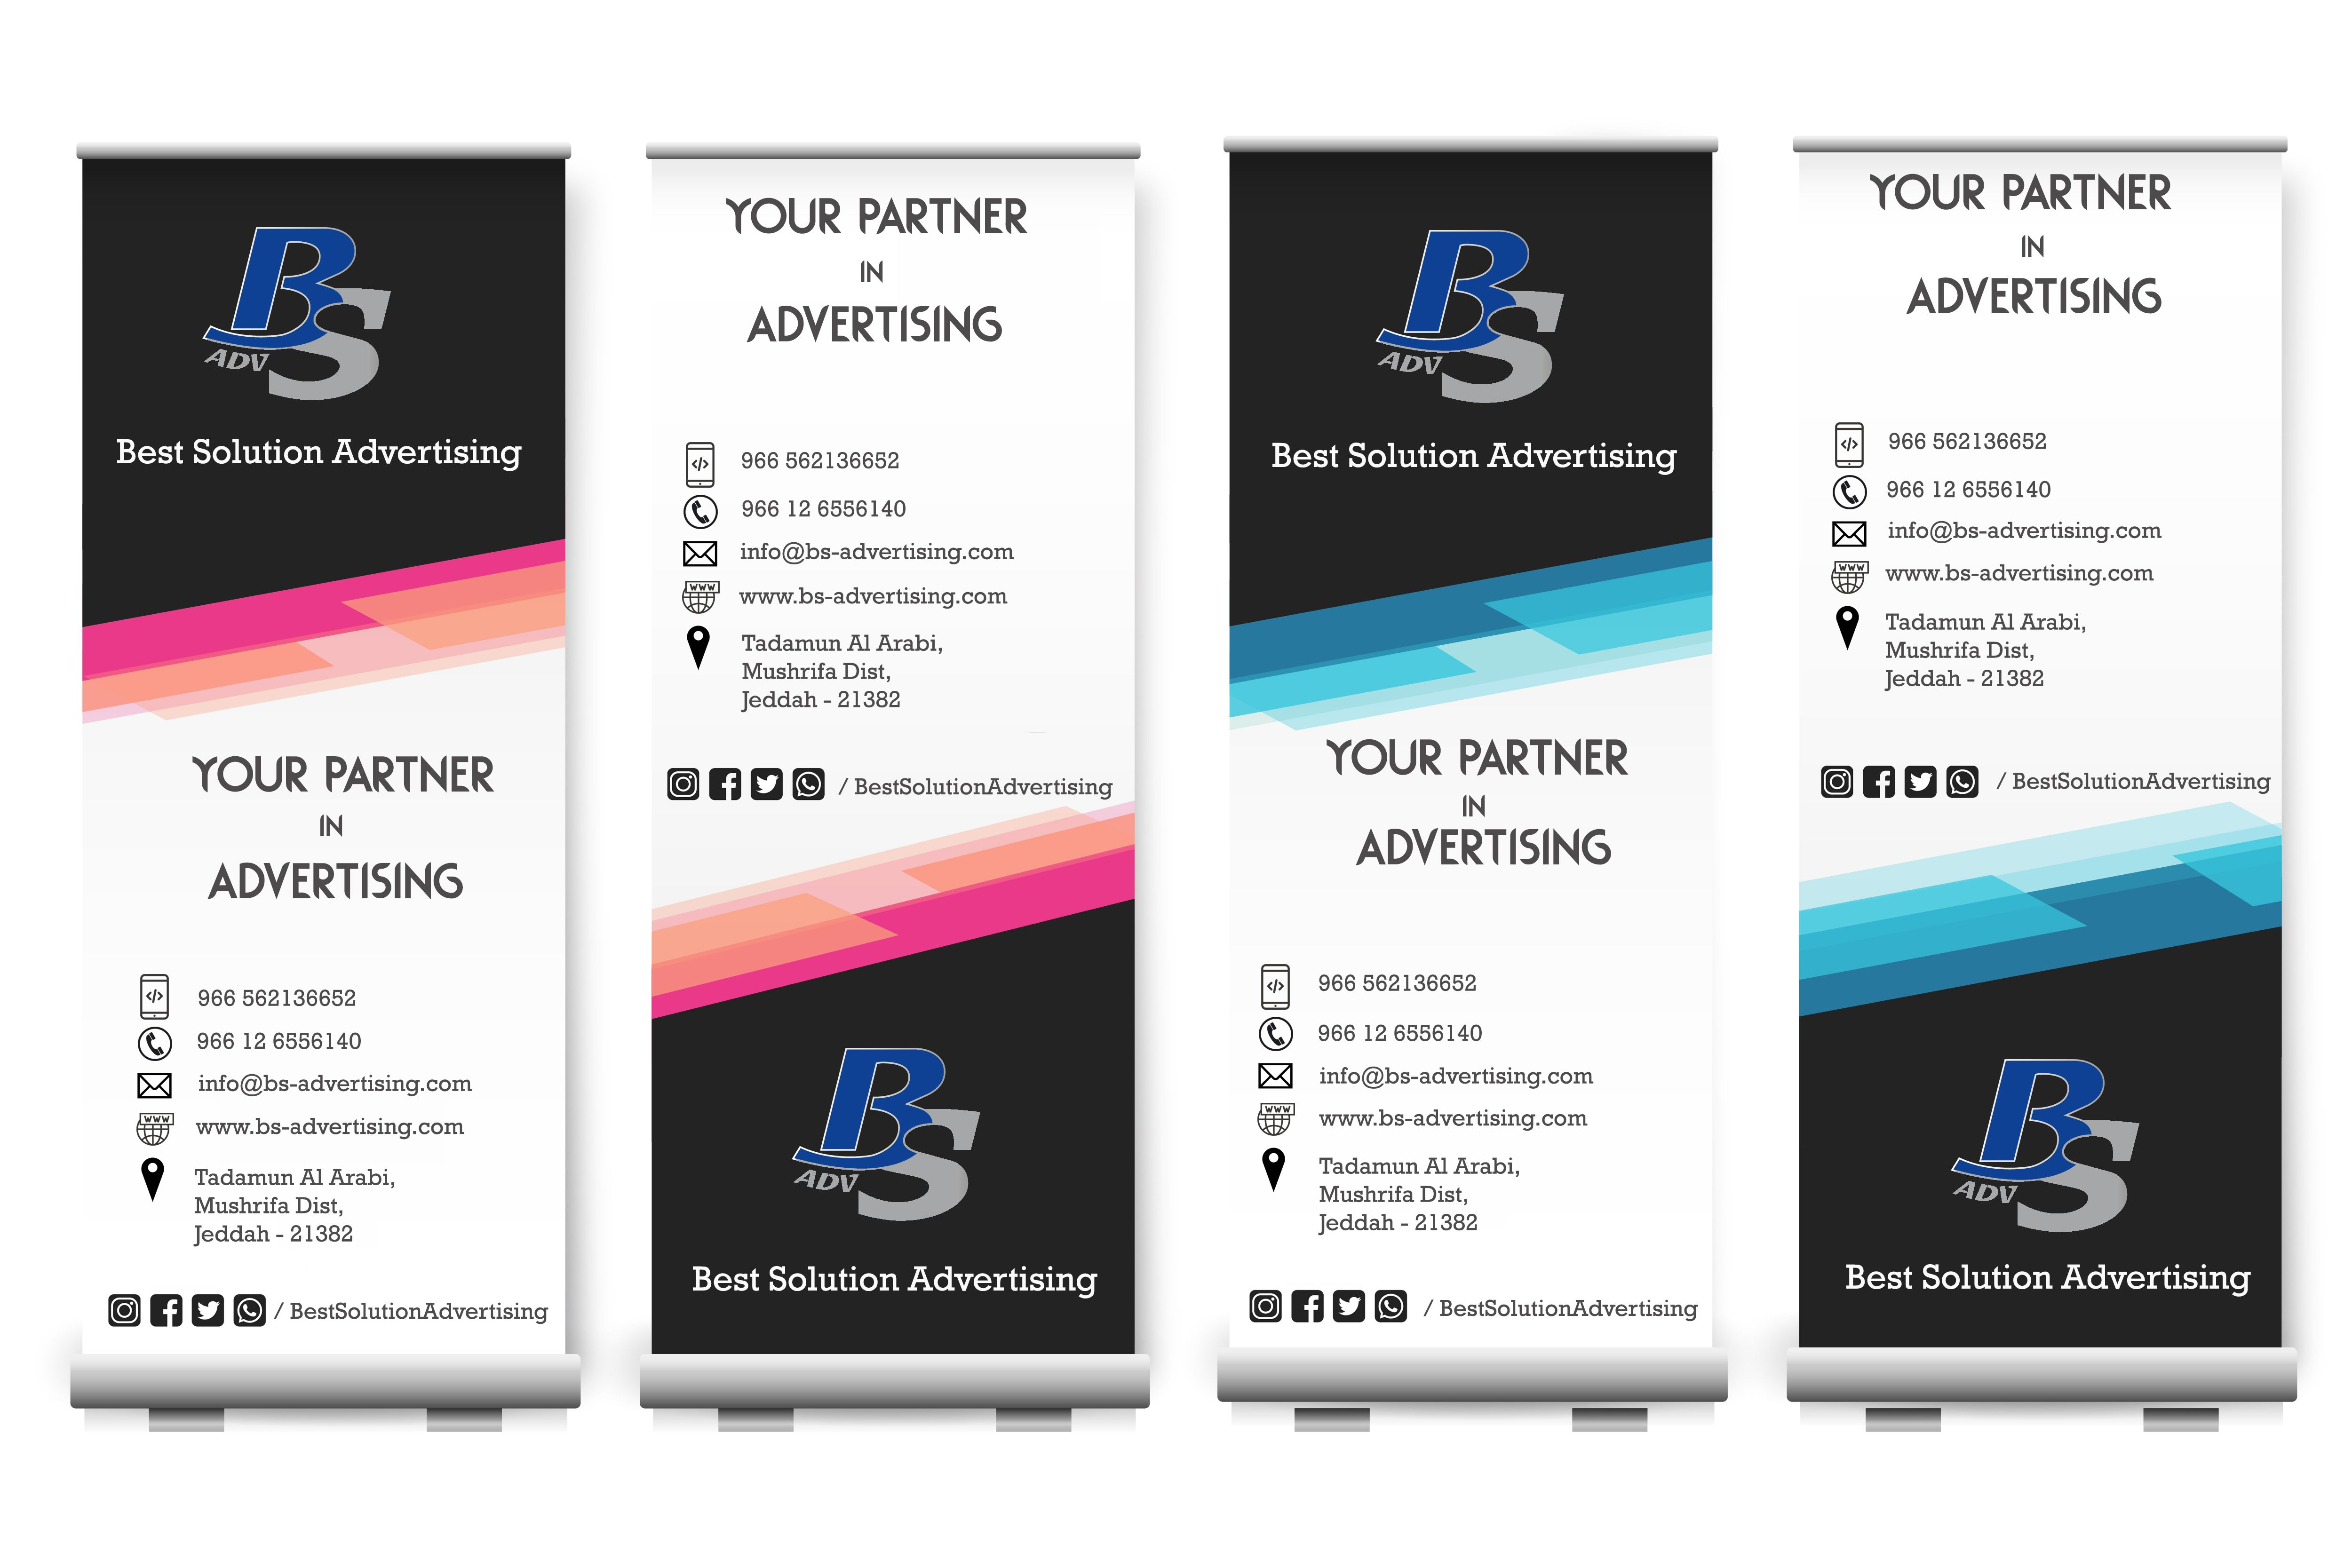 An Advertising And Digital Printing Agency In Jeddah Advertising Services Creative Design Services Advertising Agency